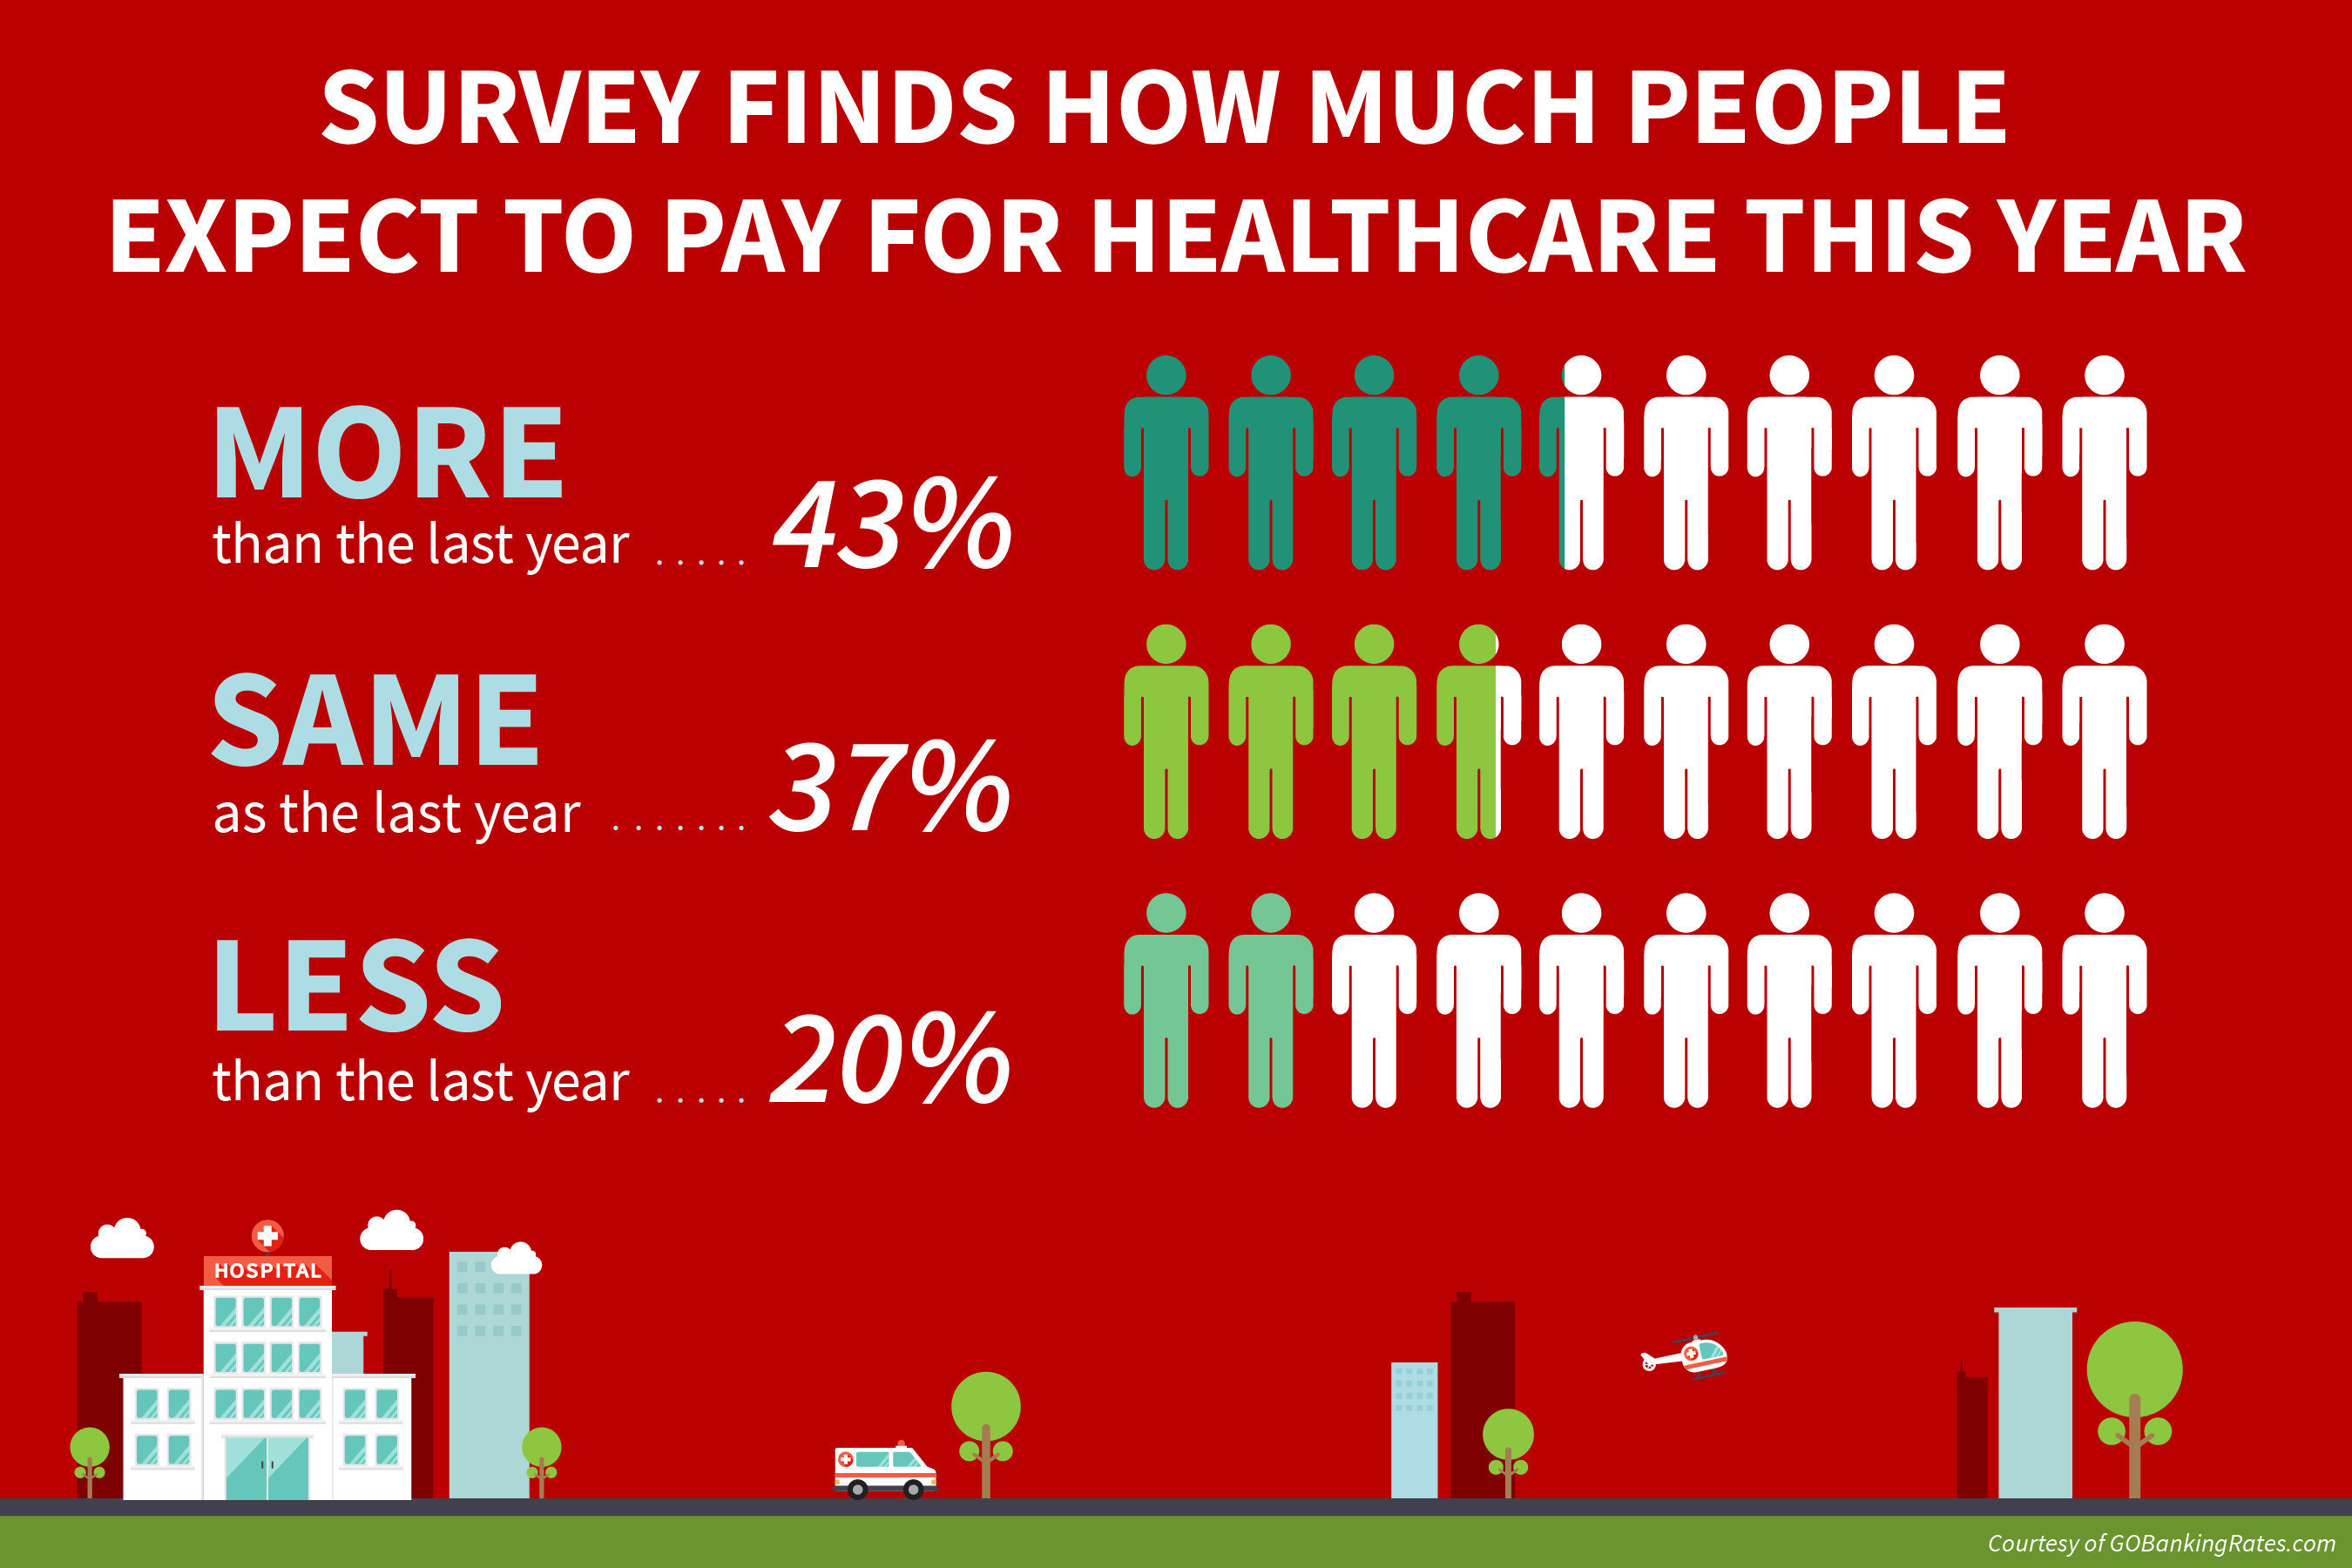 GOBankingRates survey finds how much Americans expect to pay for healthcare in 2016.